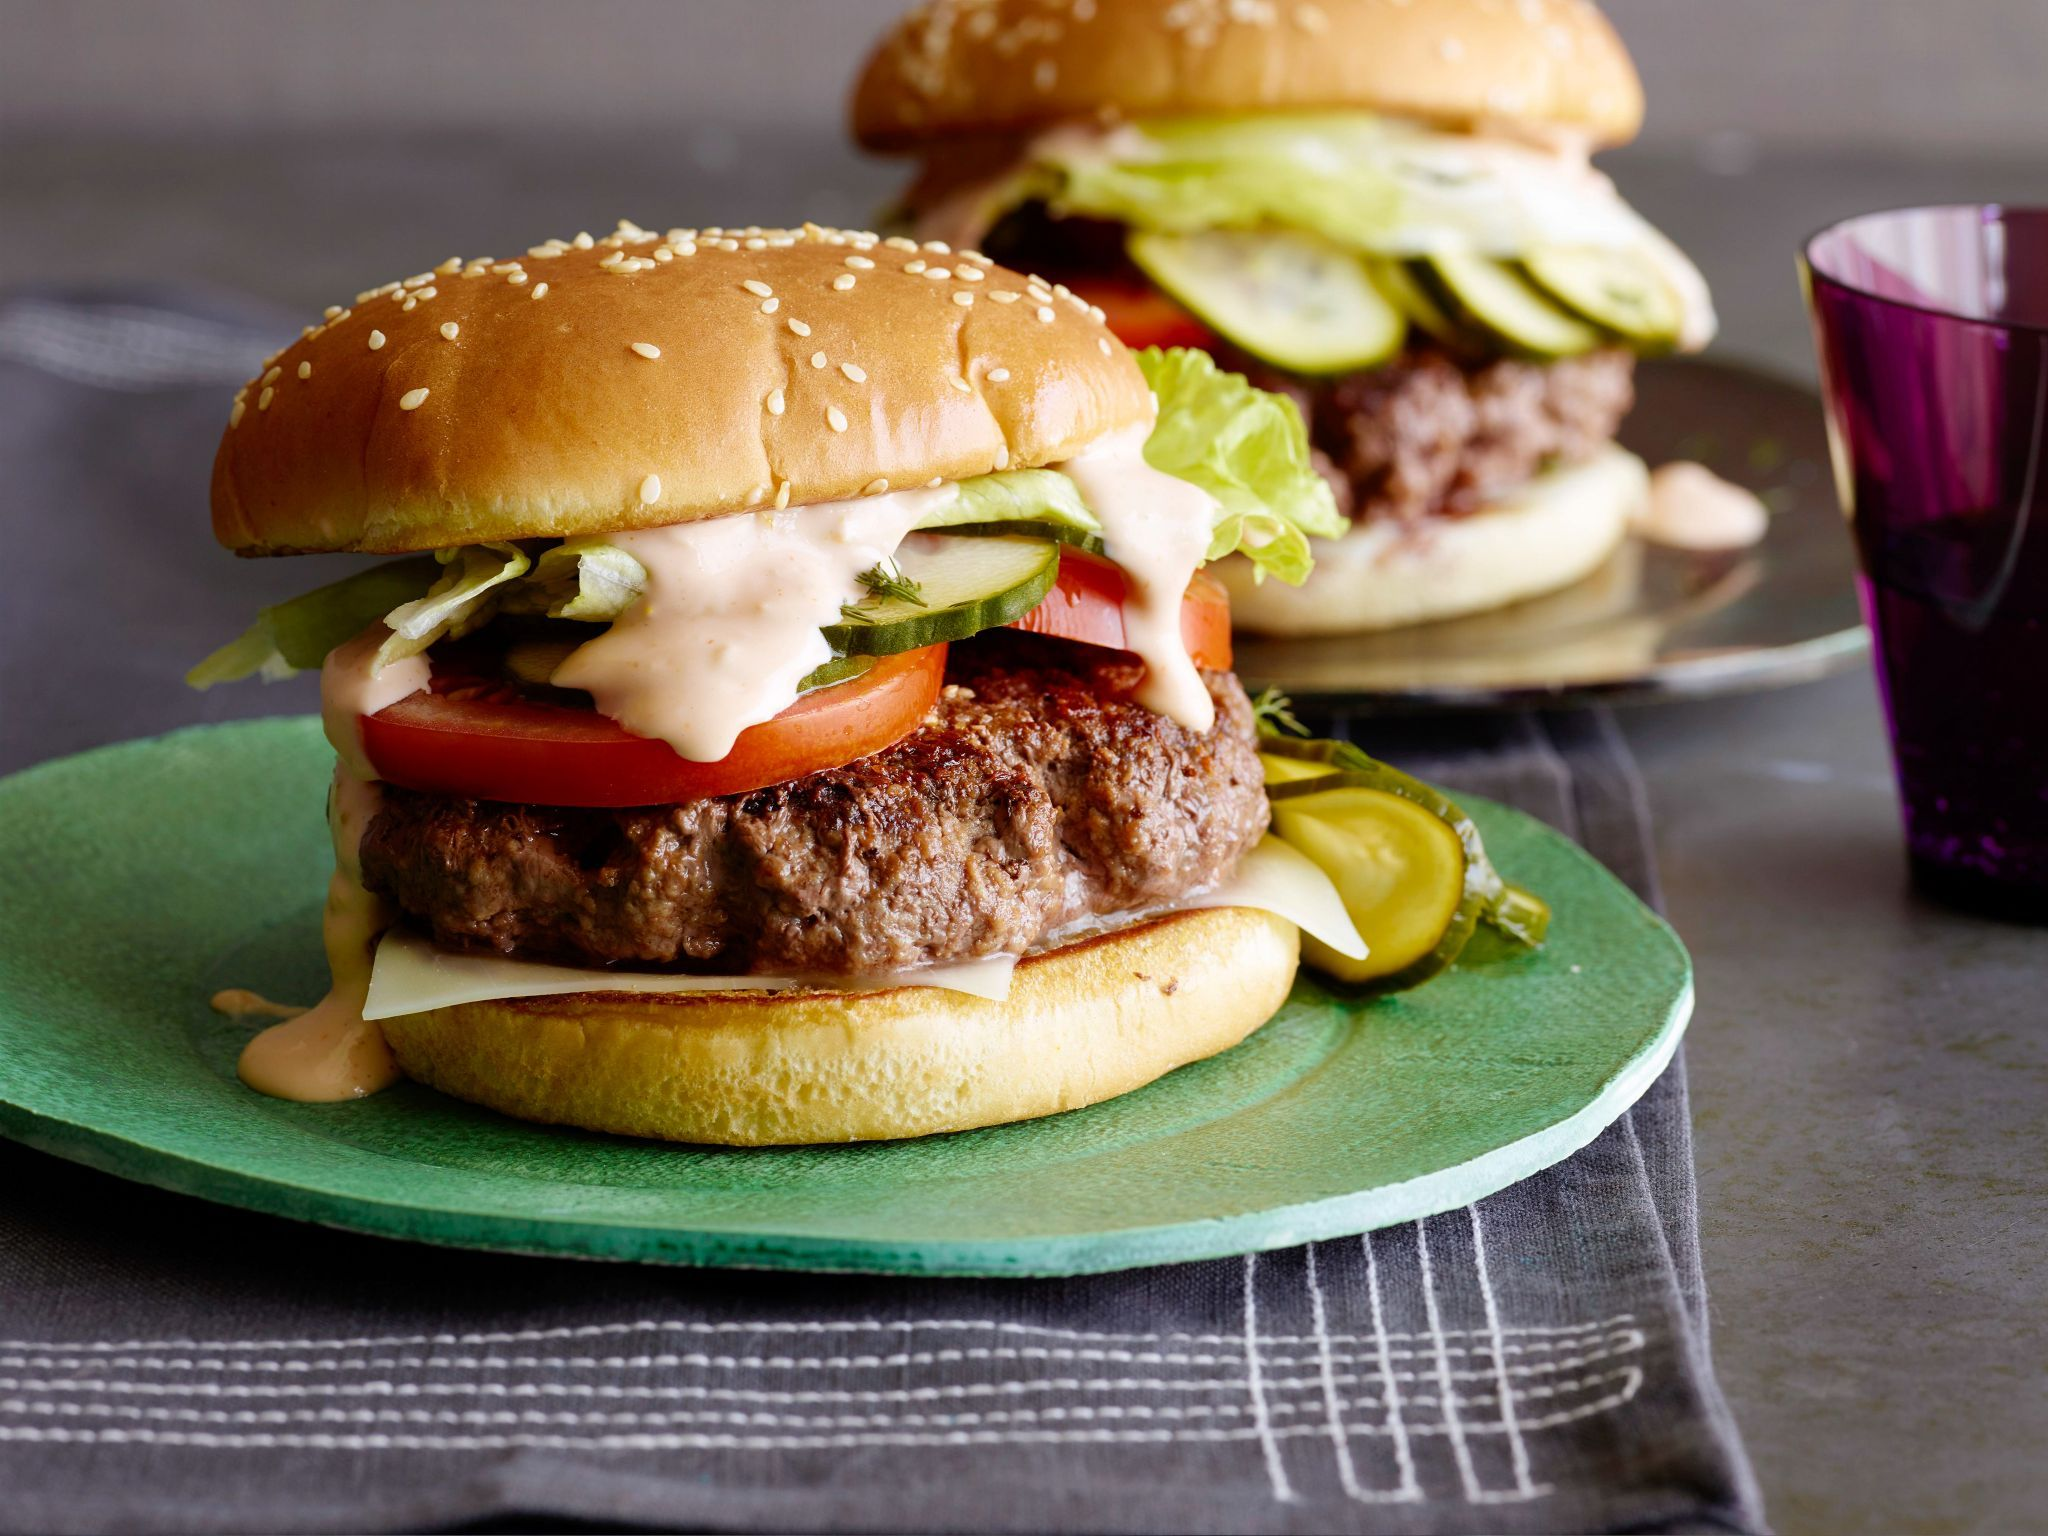 Griddle burger with 18000 island dressing and quick pickles recipe griddle burger with 18000 island dressing and quick pickles recipe from jeff mauro via food network forumfinder Image collections